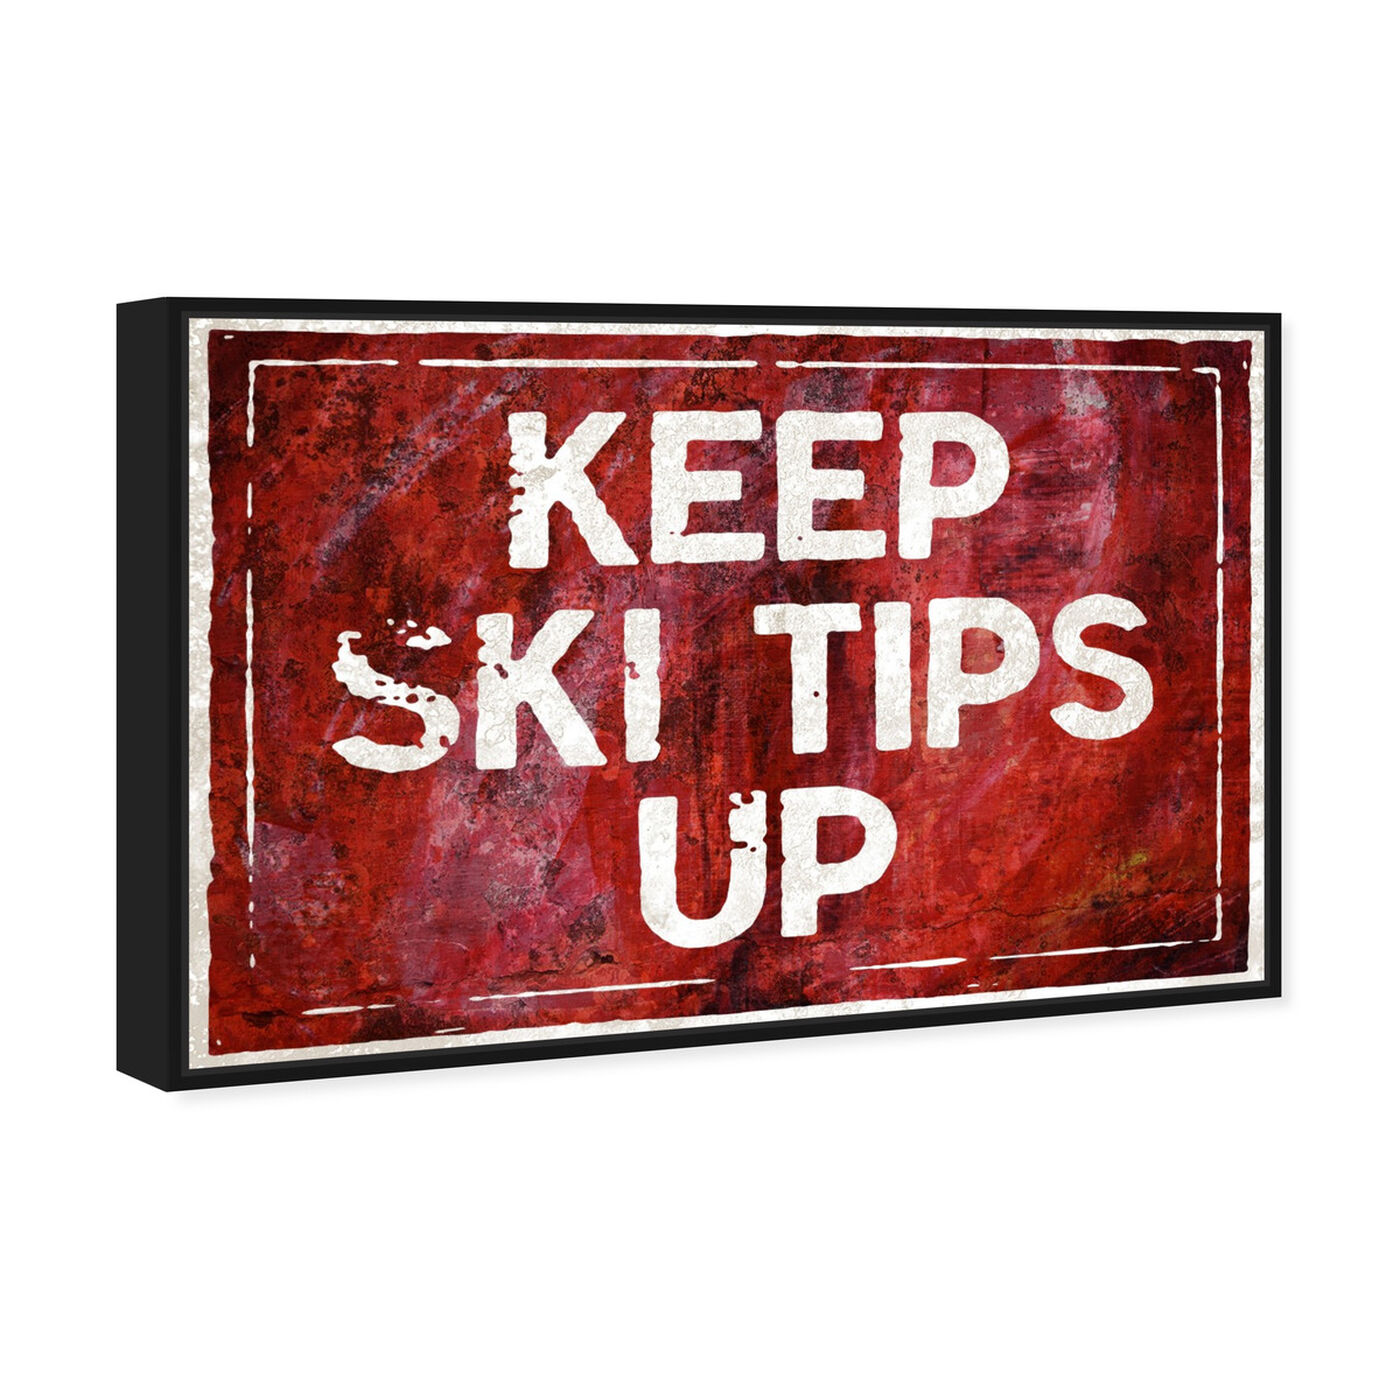 Angled view of SKI Tips Up featuring typography and quotes and funny quotes and sayings art.